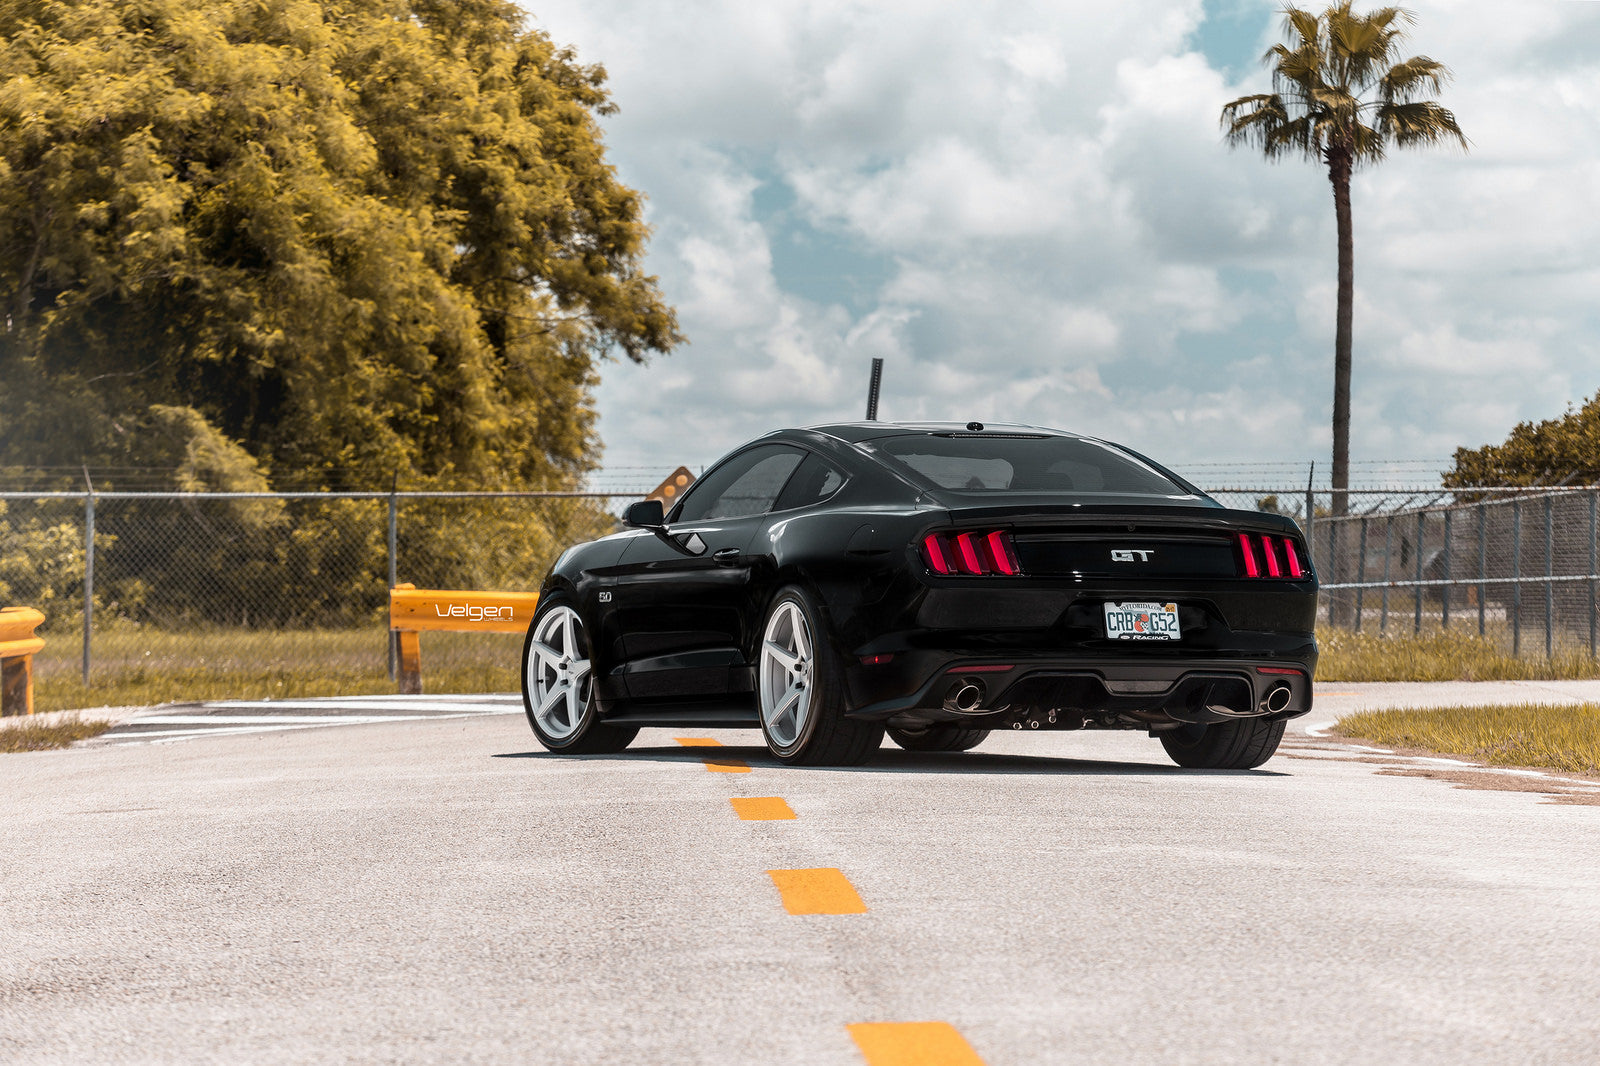 black-mustang-classic5-silver-5